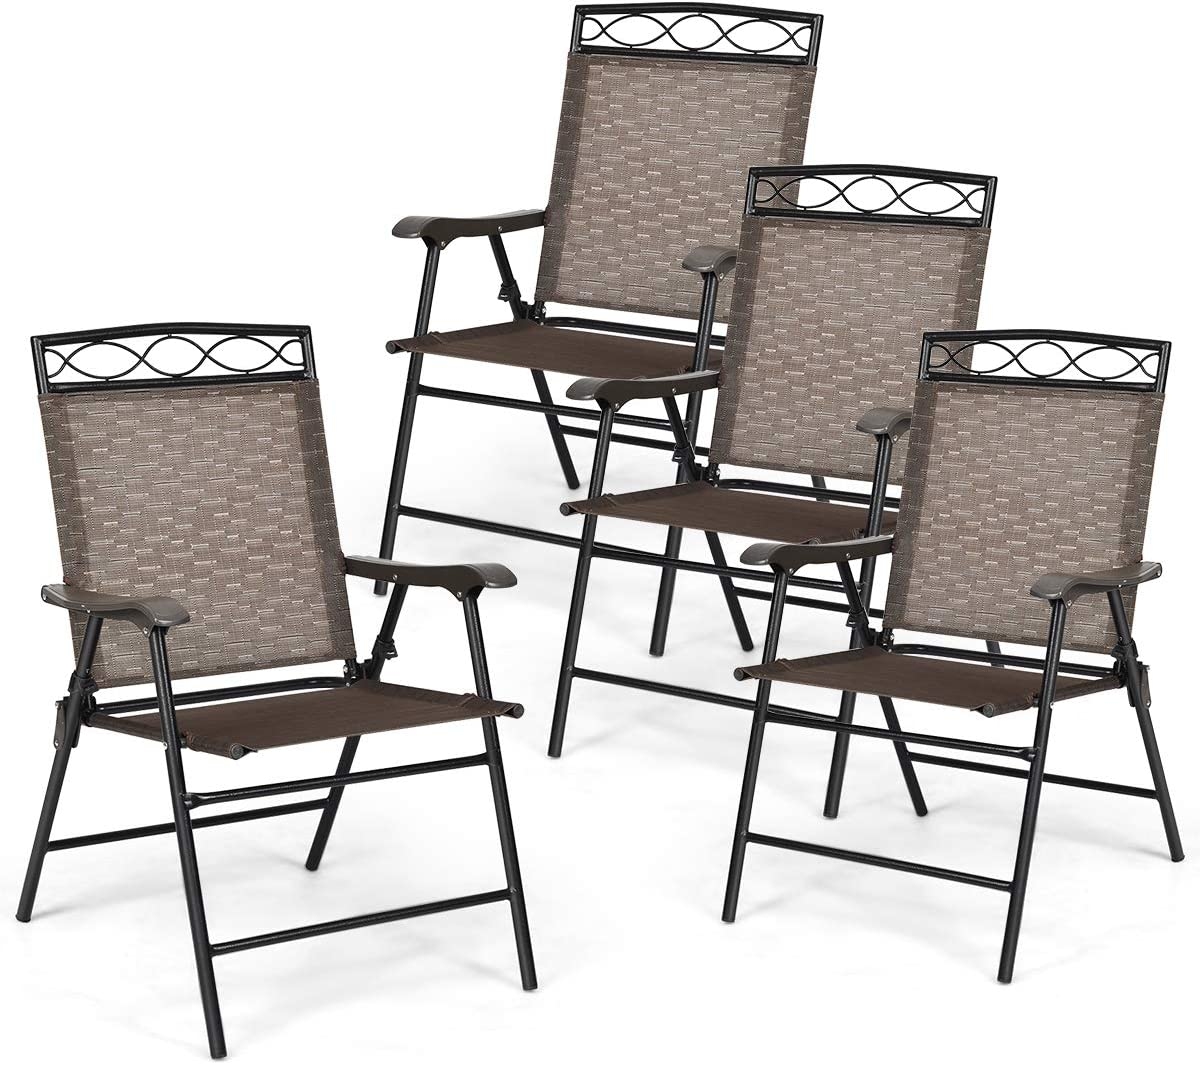 Giantex Set of 4 Patio New item Dining Outdoor Complete Free Shipping Folding for Chairs